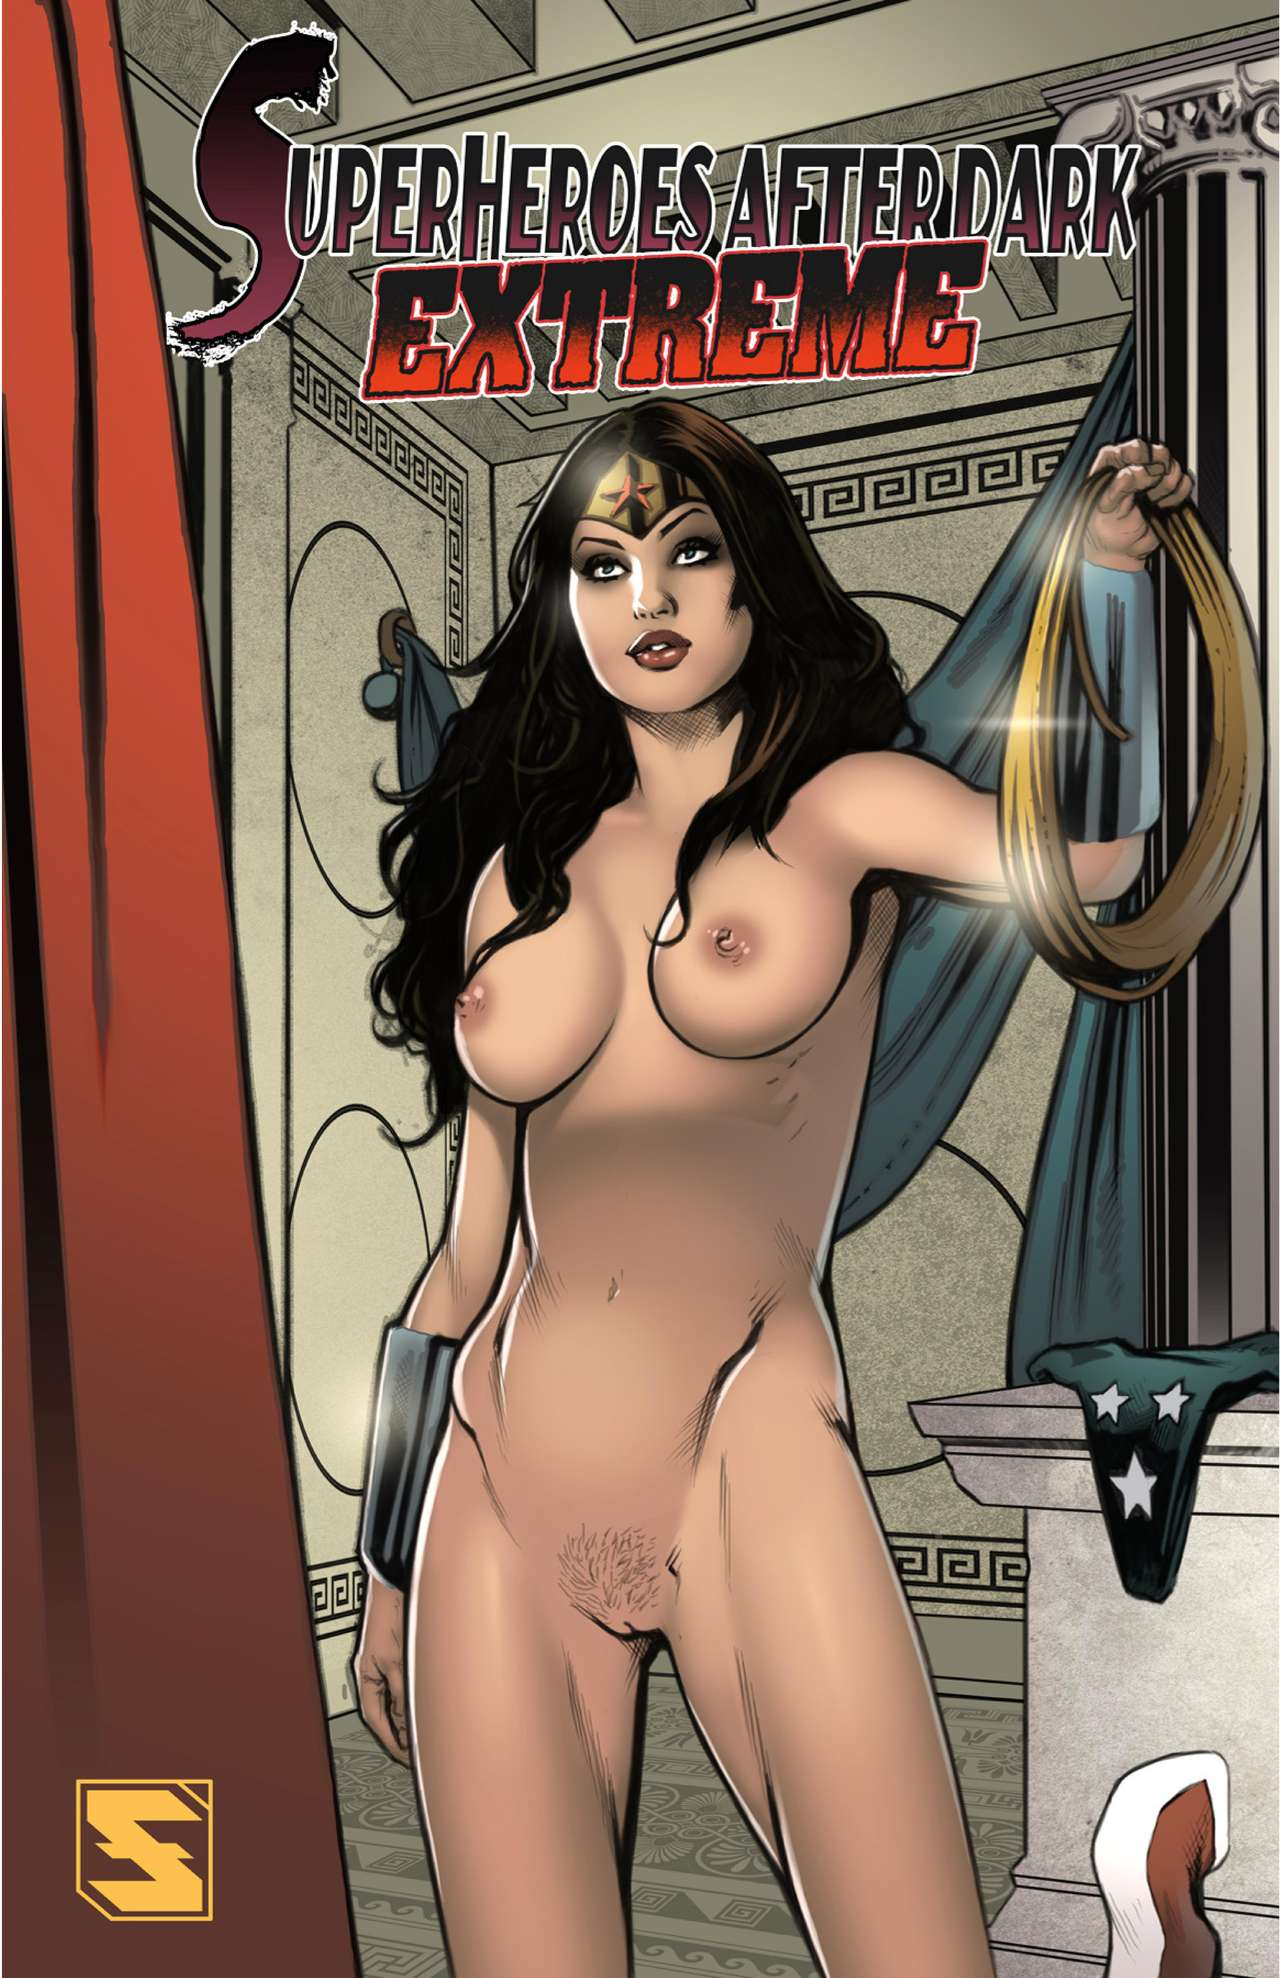 Superheroes After Dark Extreme porn comics 8 muses